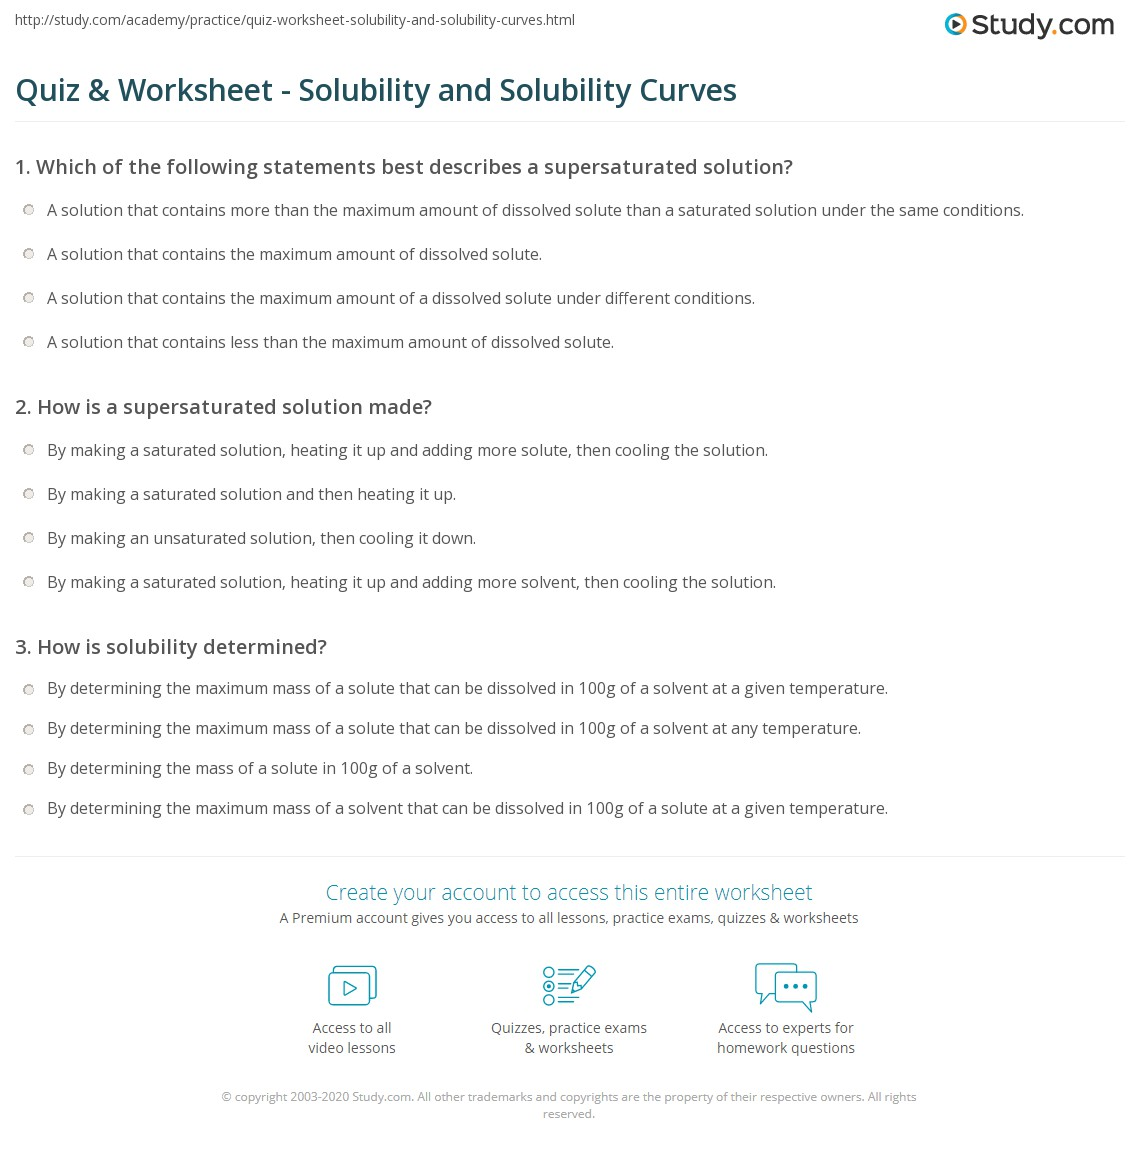 Print Solubility and Solubility Curves Worksheet